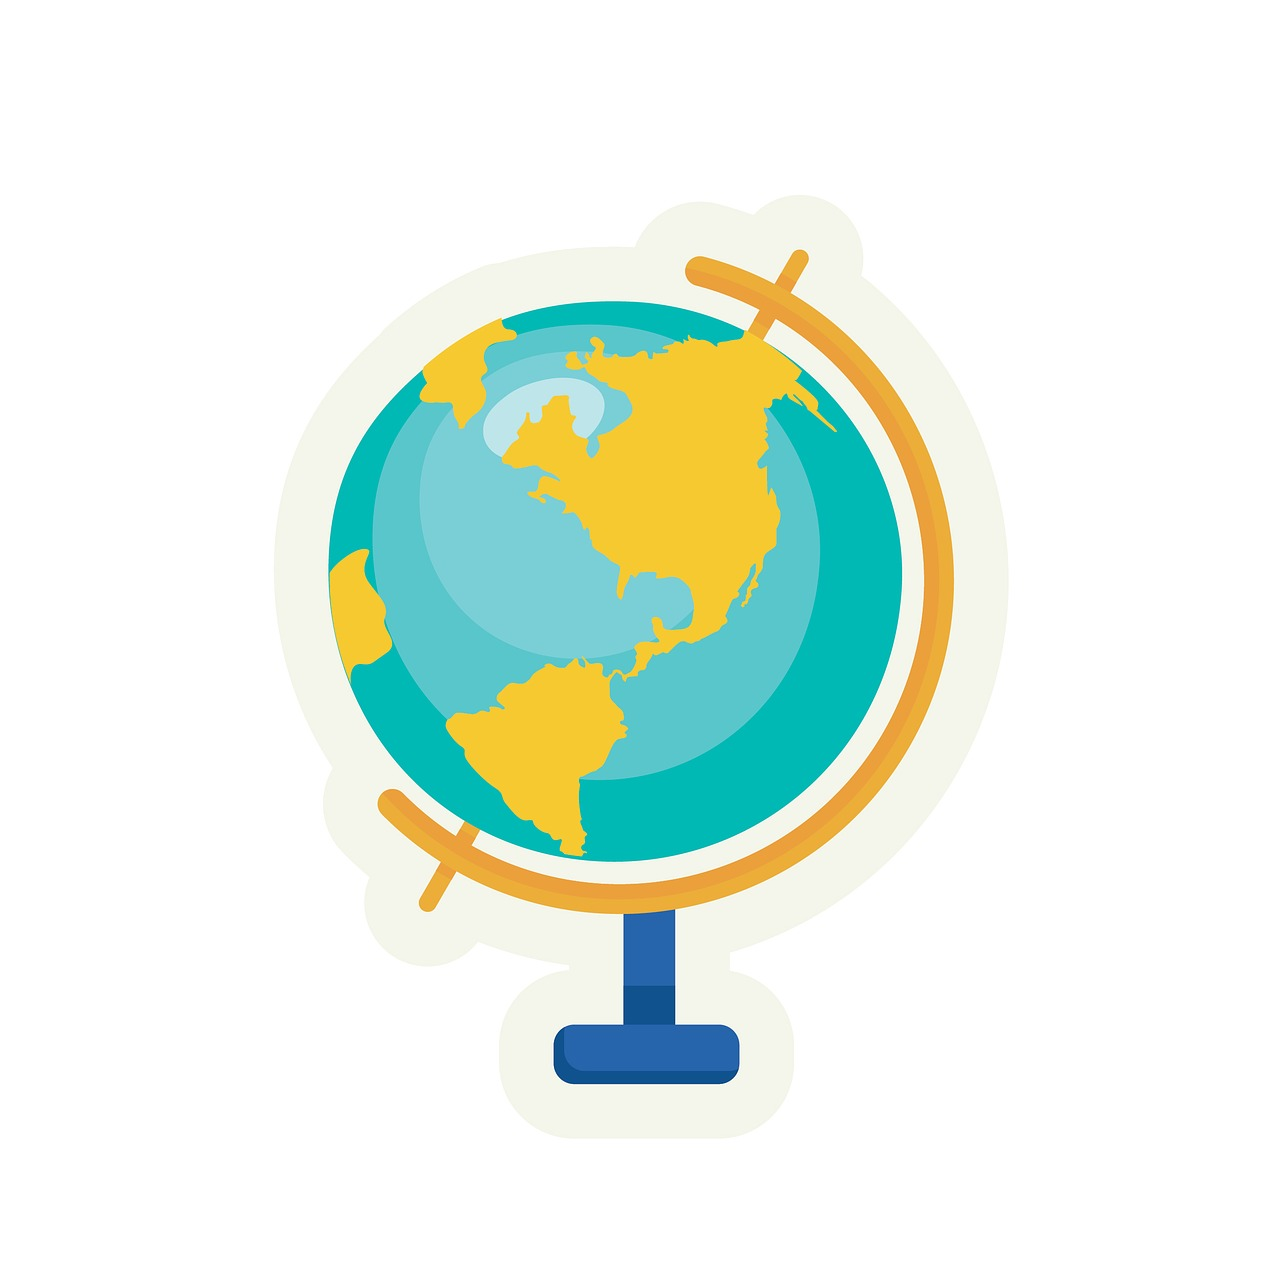 The world,orb,geographic,clip art,clipart.